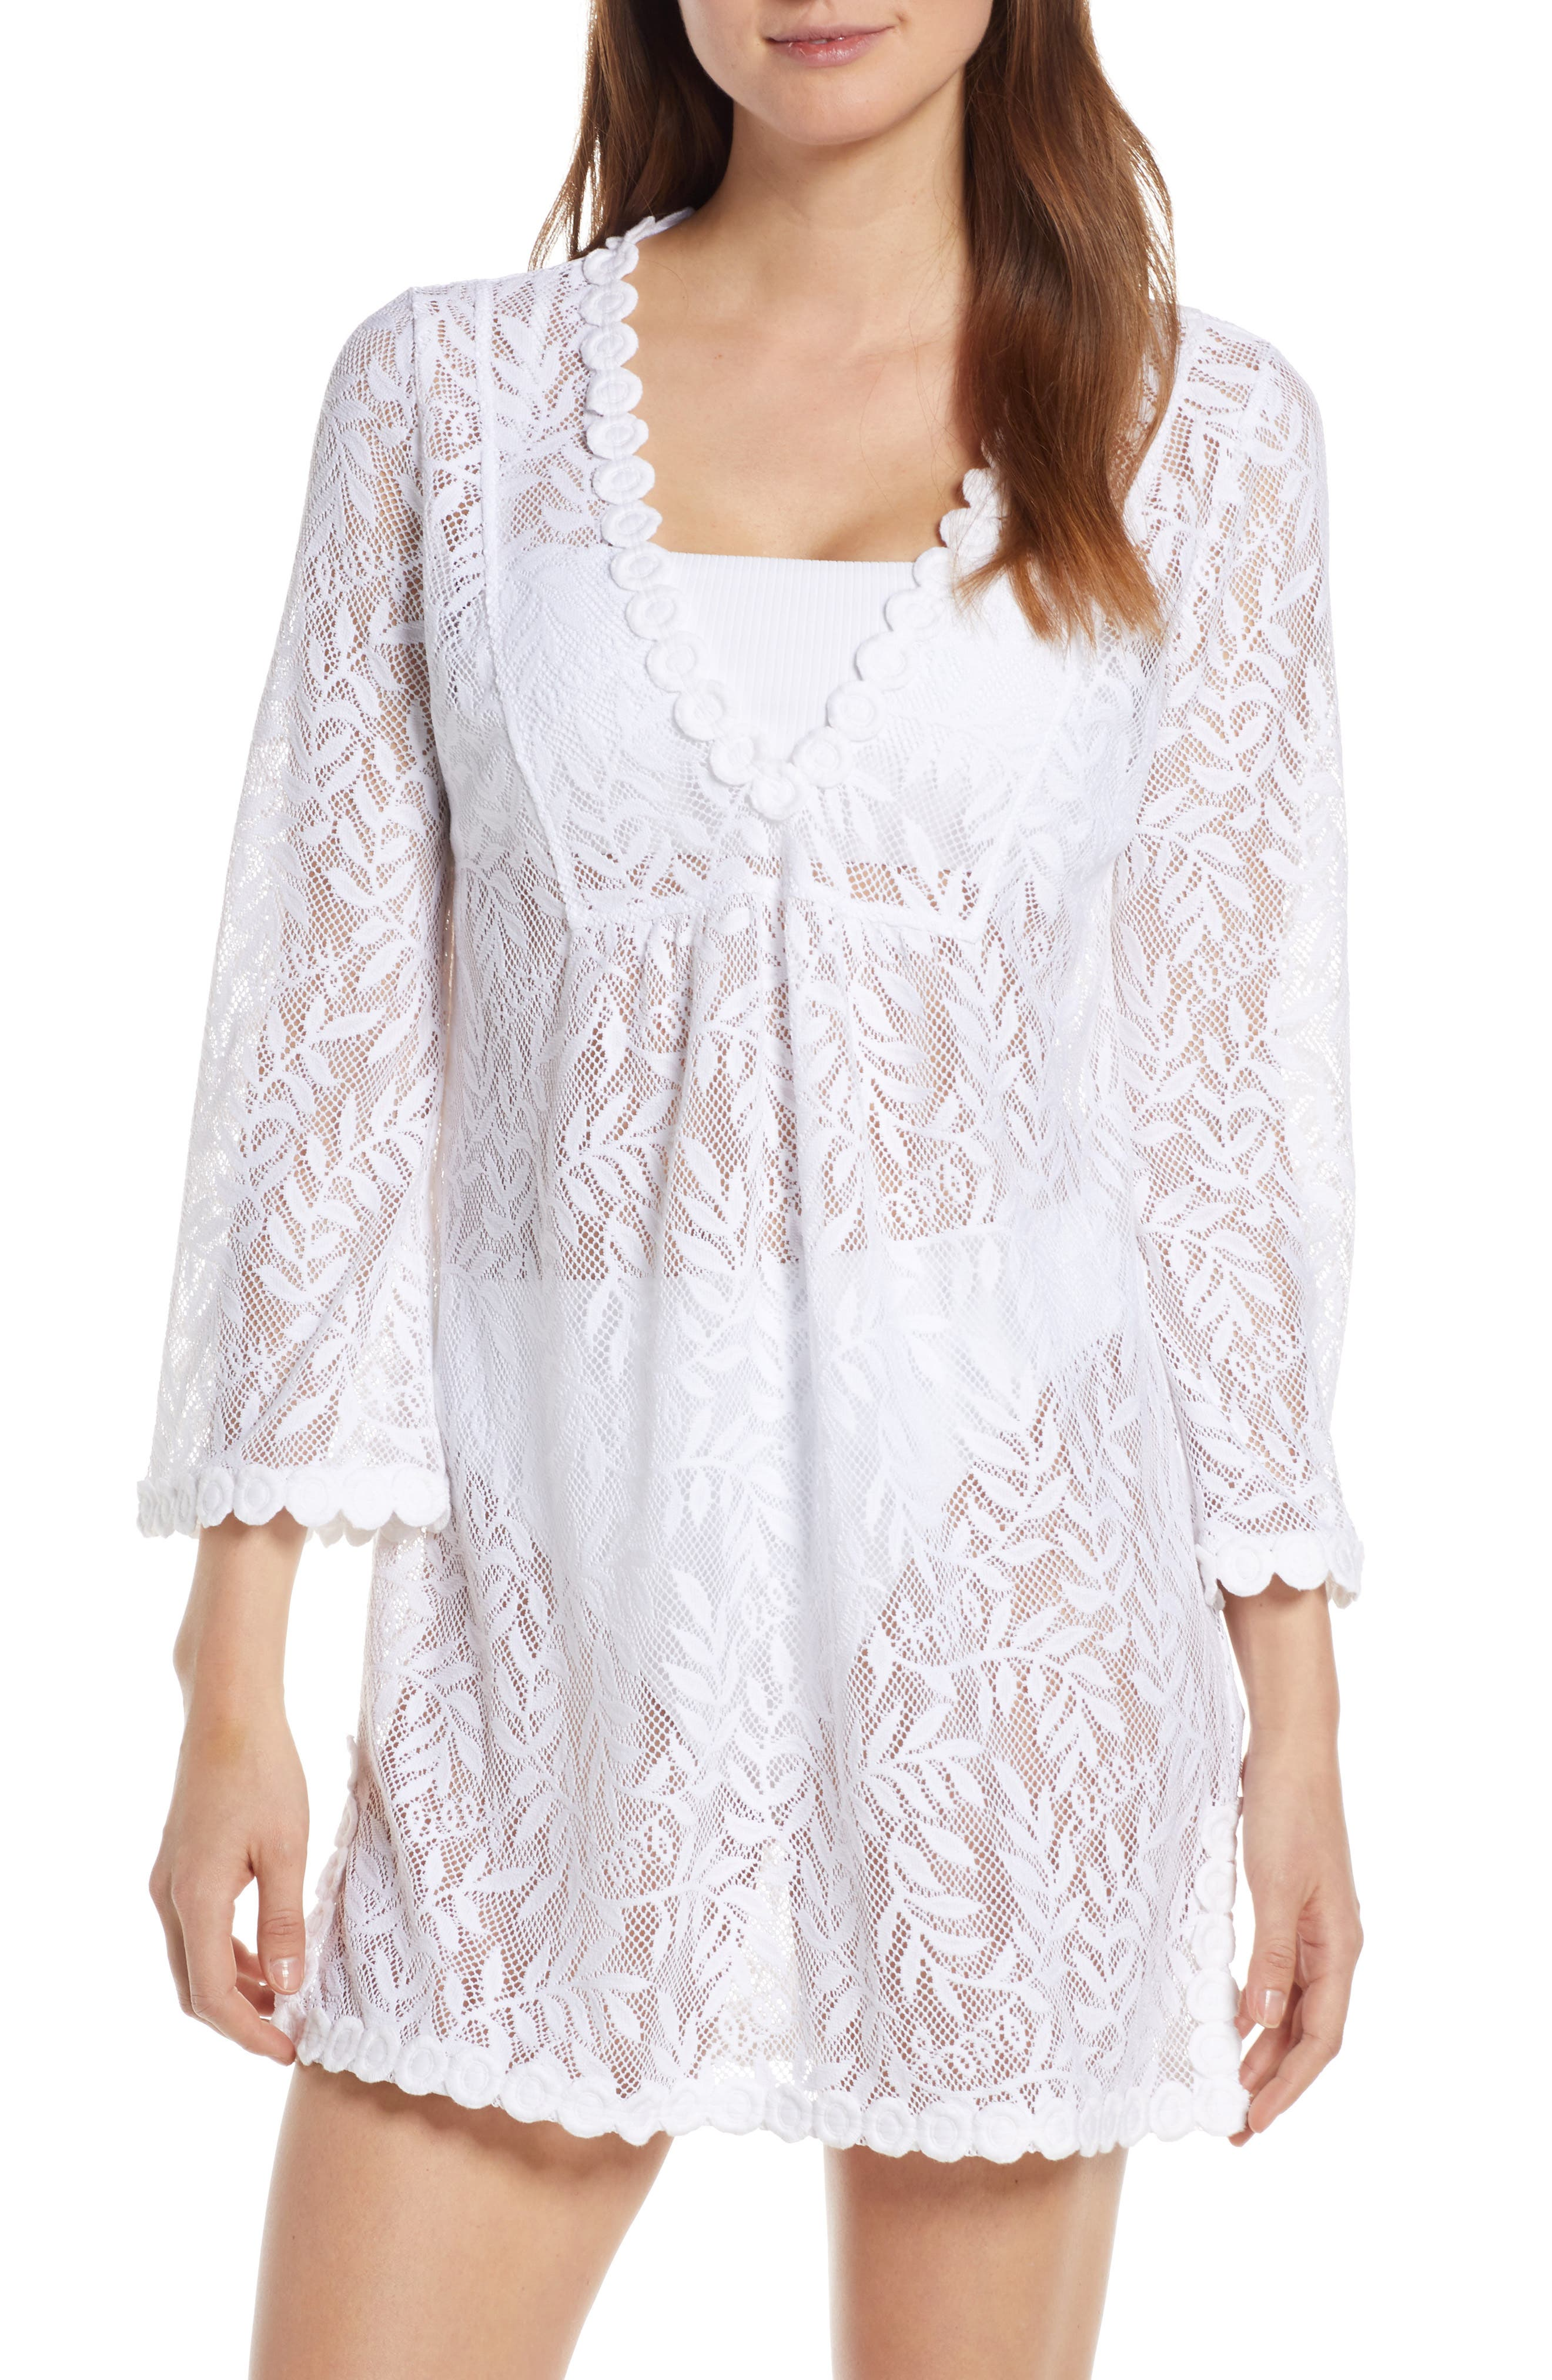 Lilly Pulitzer Patrice Cover-Up Tunic, White